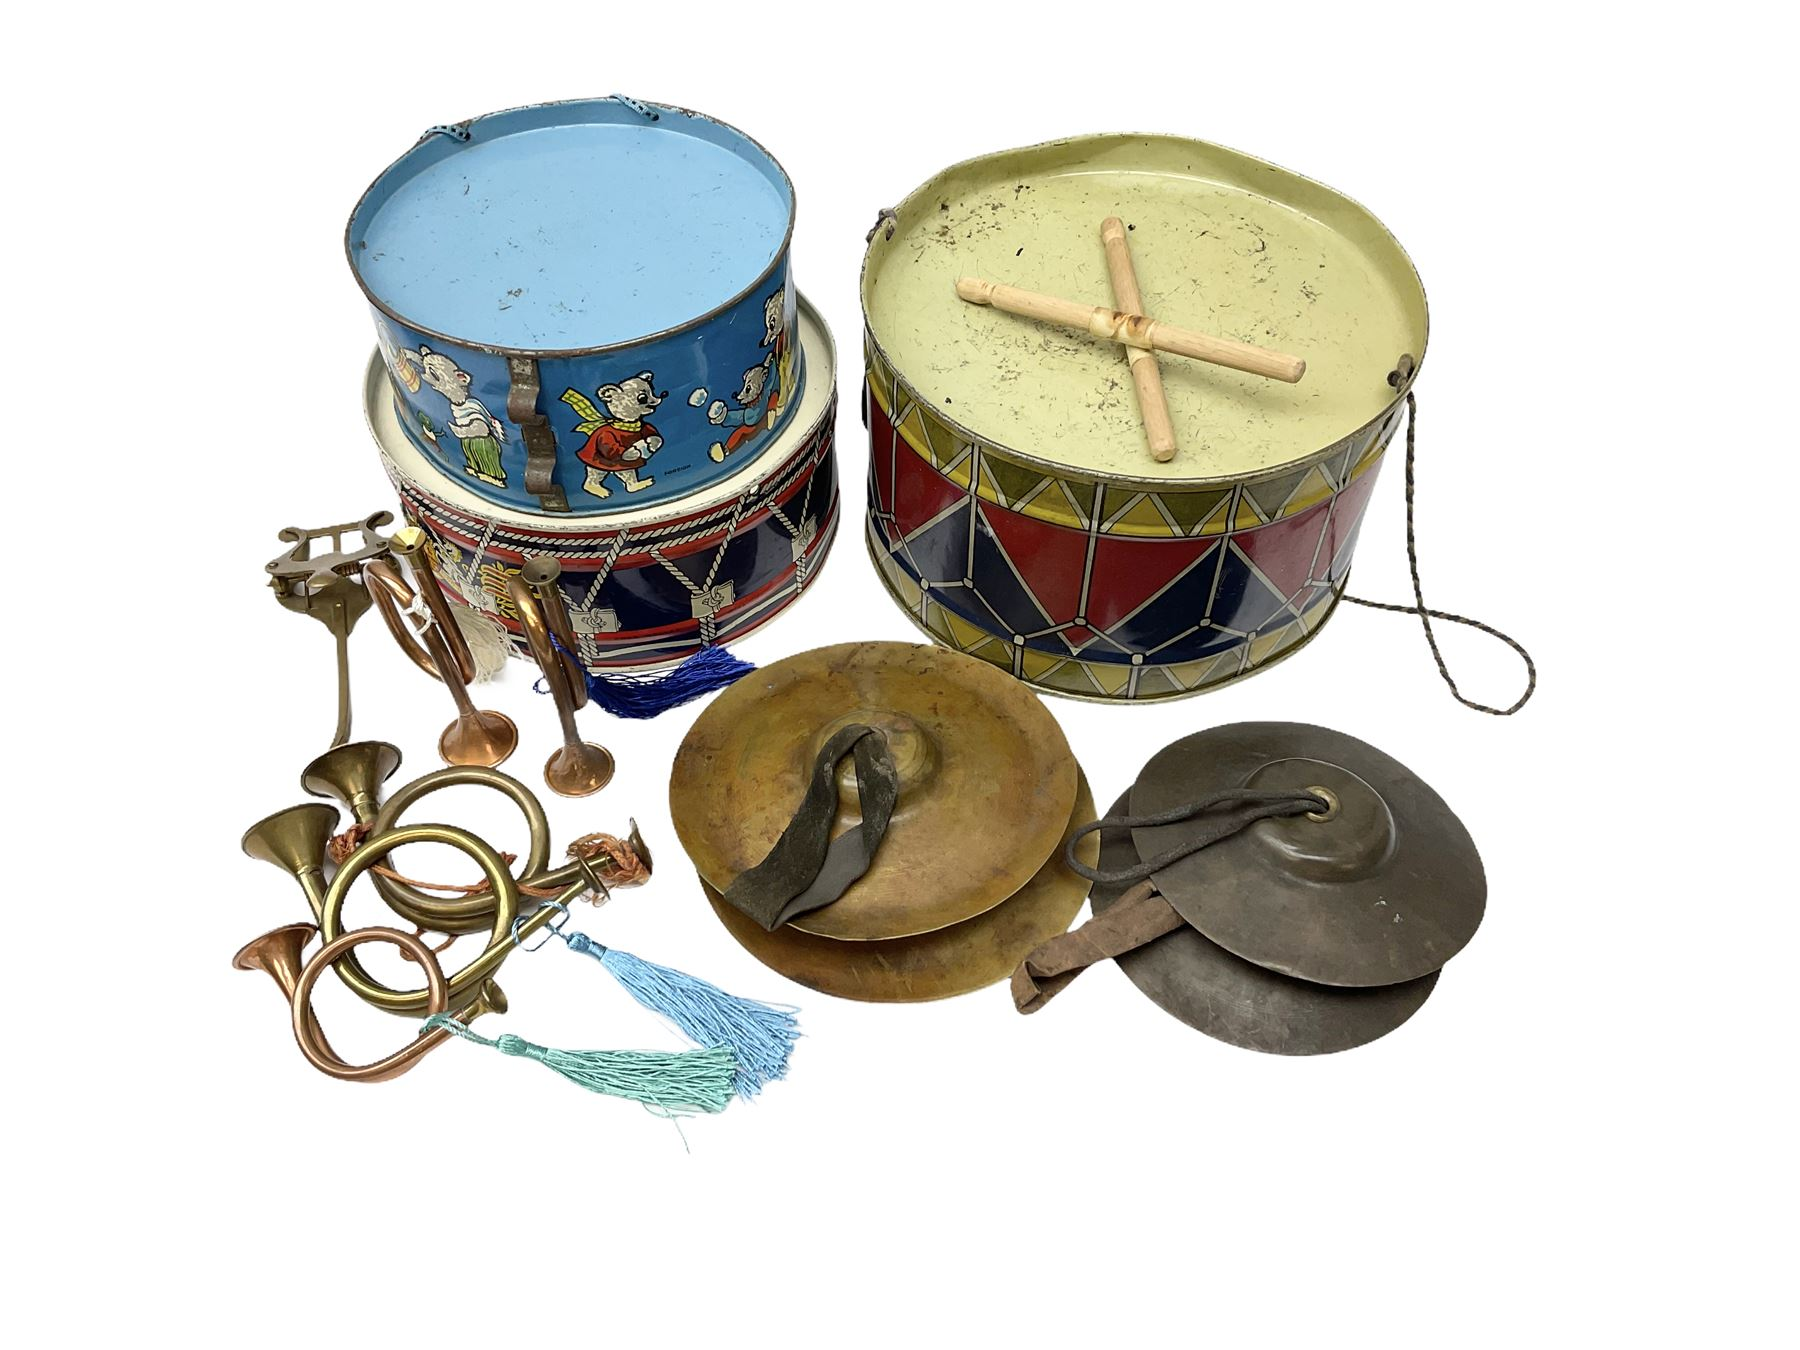 Vintage musical toys including three tin-plate drums by Chad Valley etc; two sets of cymbals; five m - Image 2 of 5